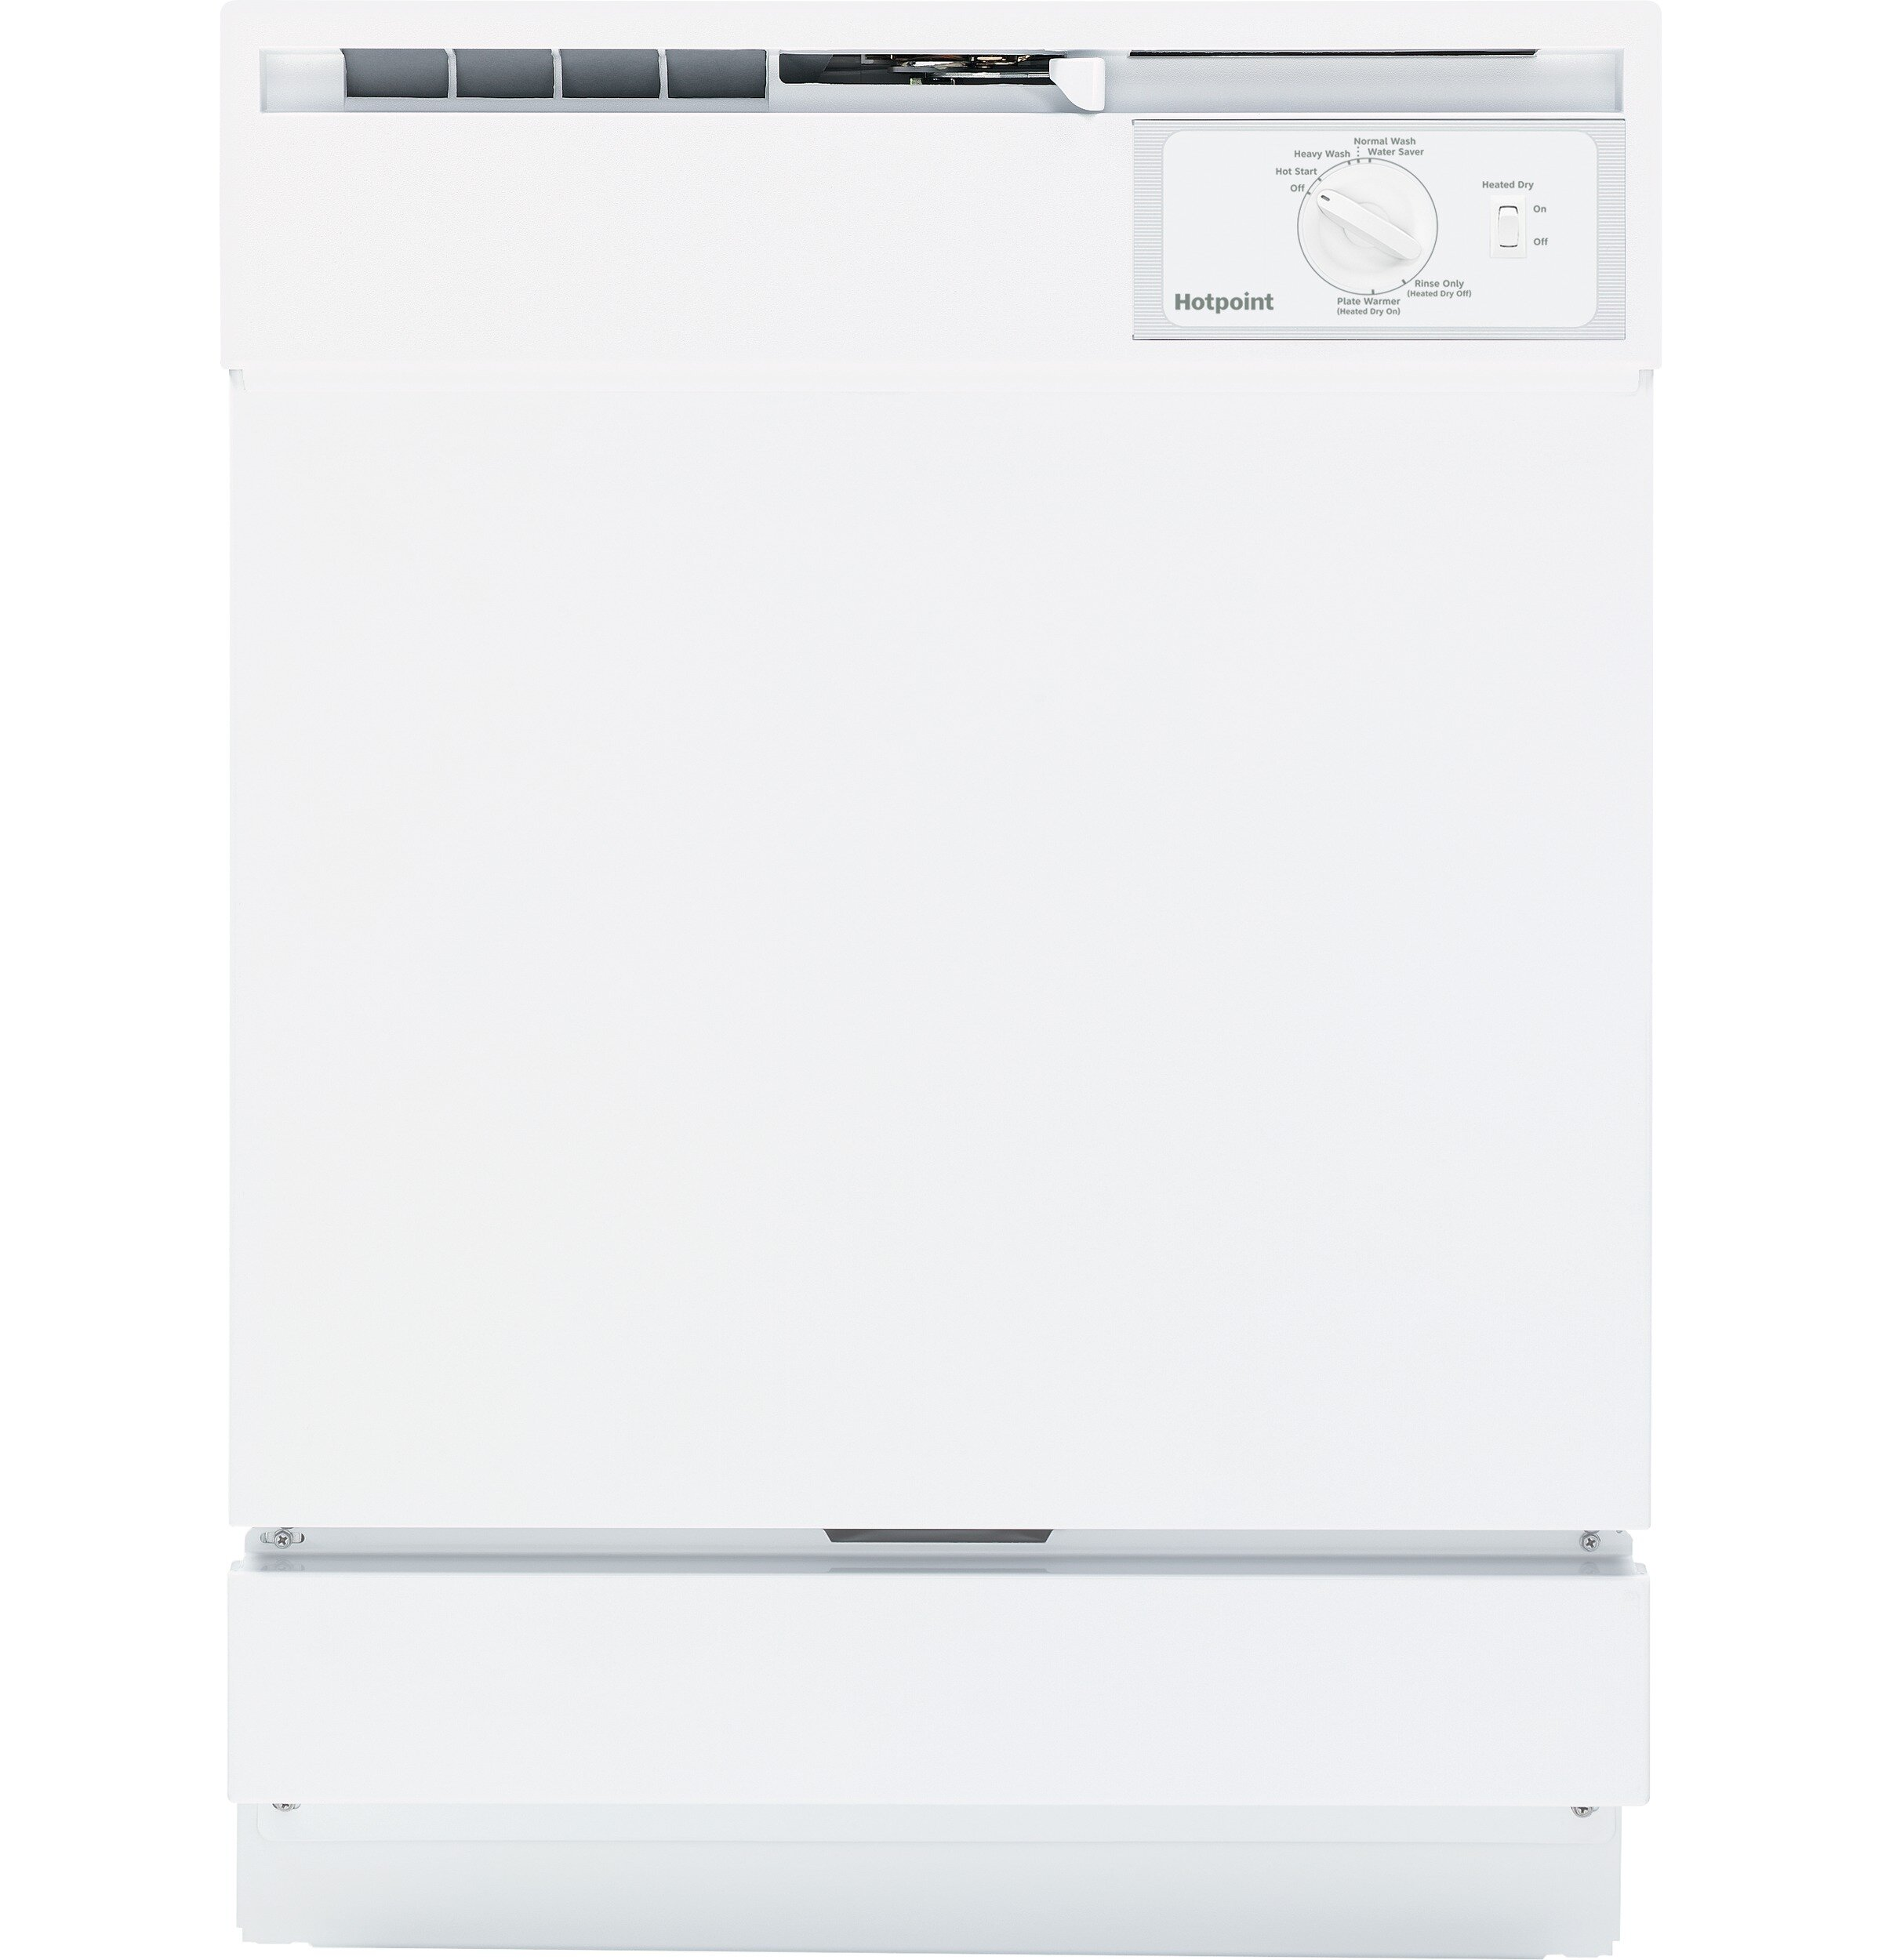 Hotpoint 24 64 Dba Built In Full Console Dishwasher Reviews Wayfair